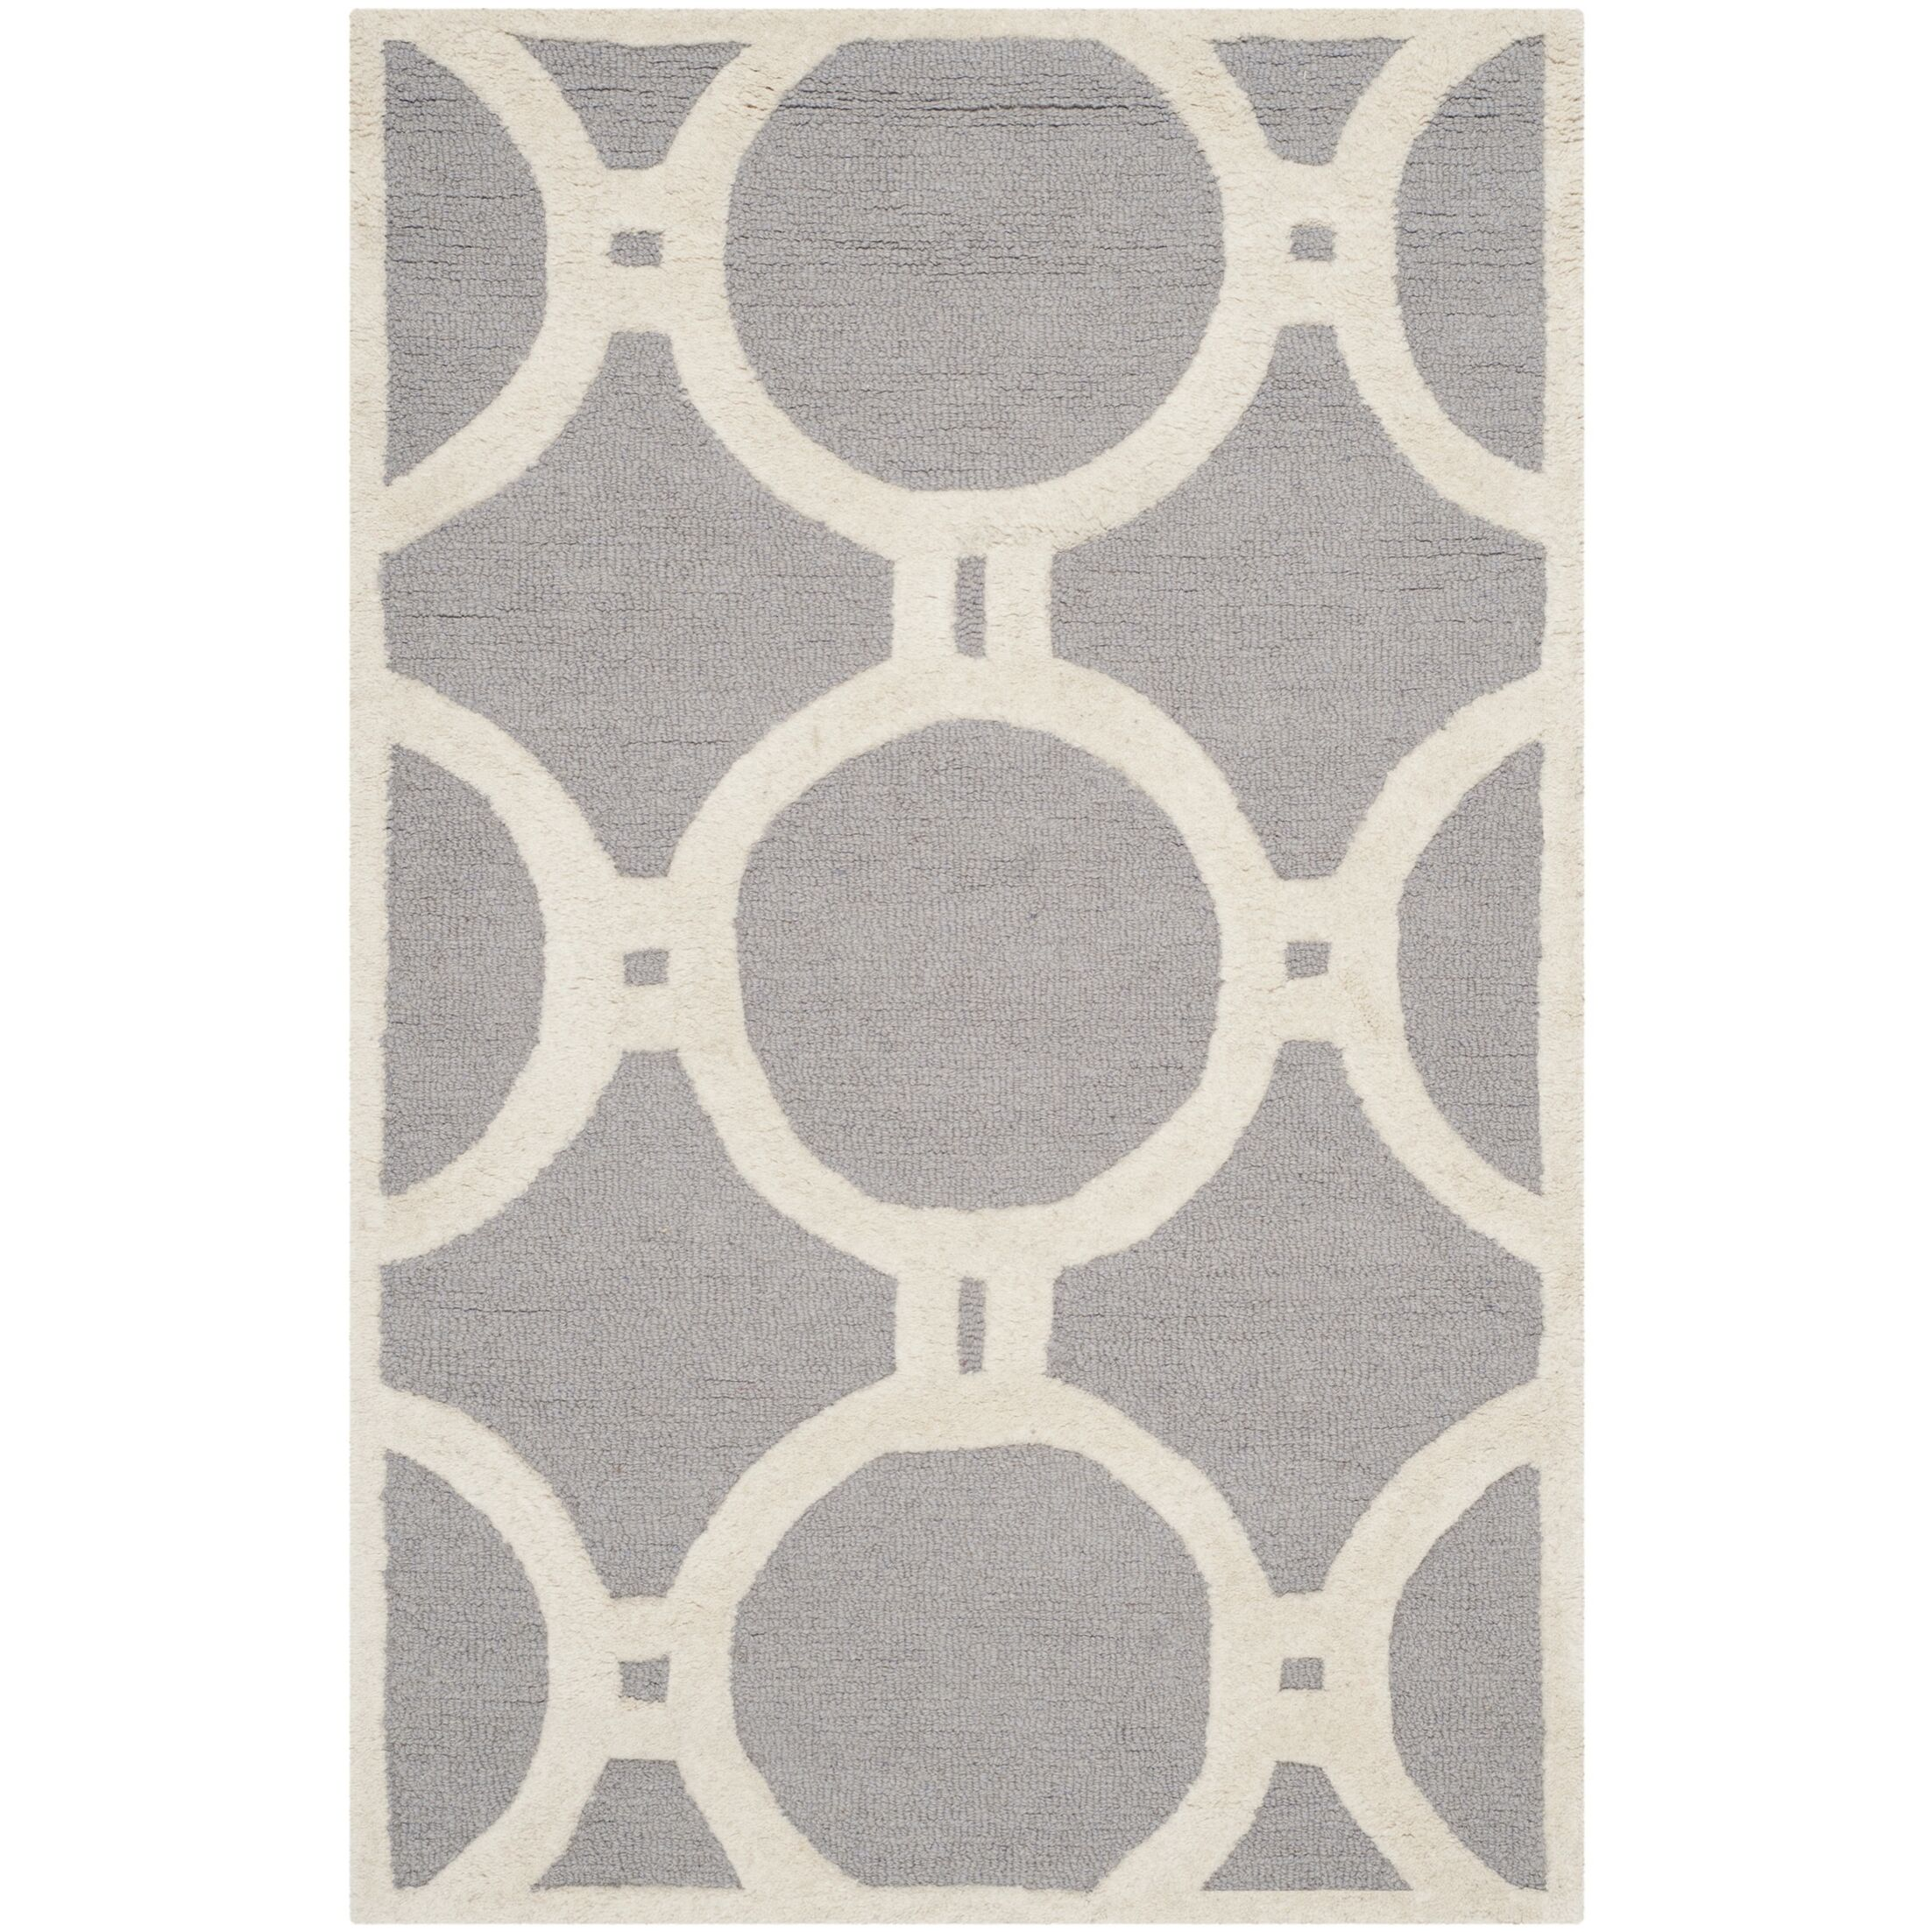 Martins Hand-Tufted Wool Silver/Ivory Area Rug Rug Size: Rectangle 9' x 12'